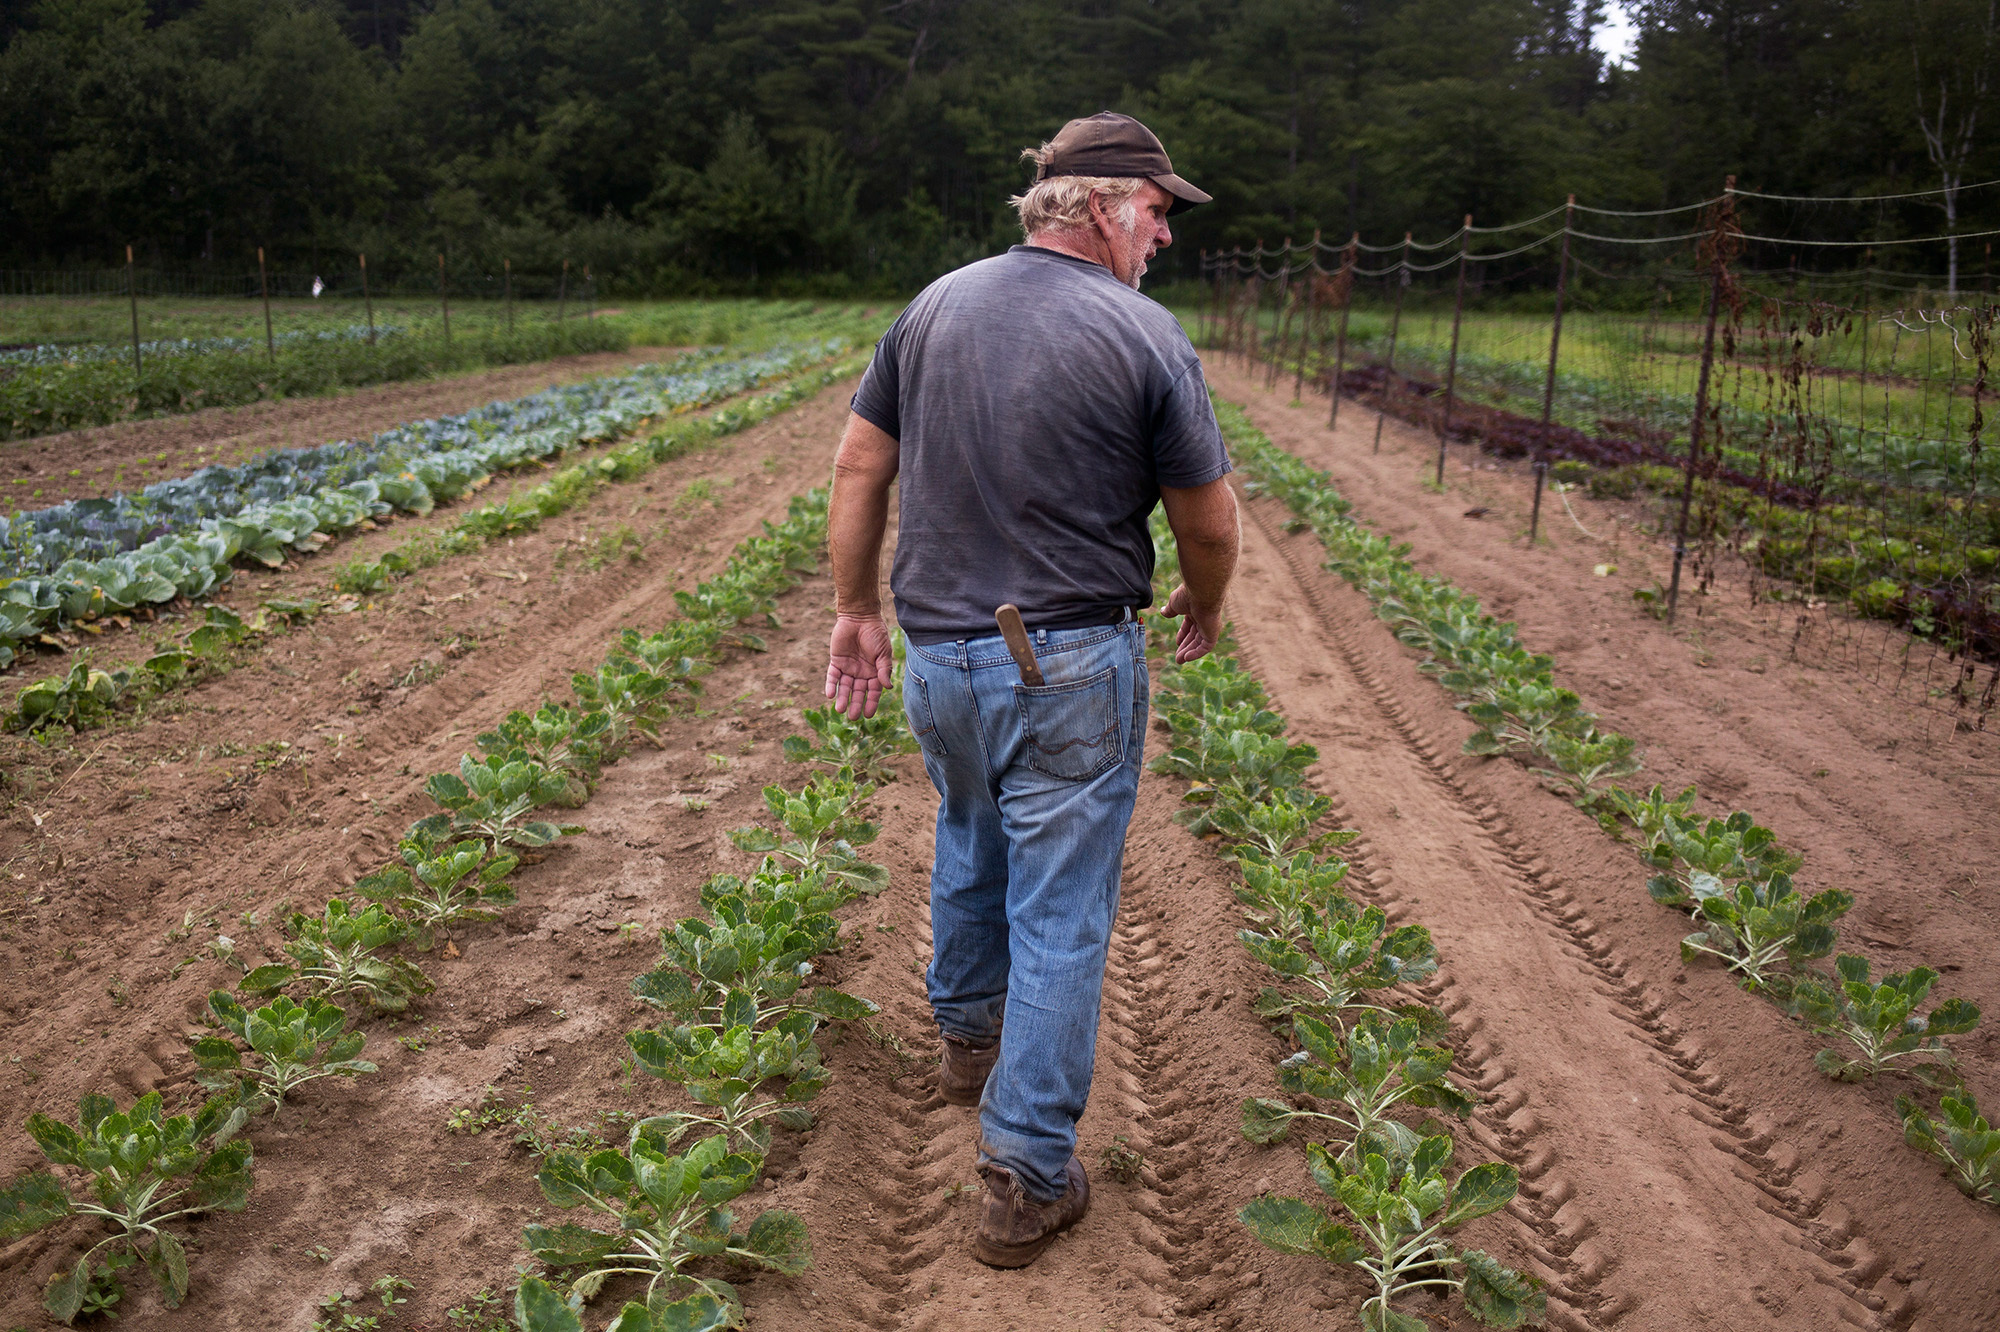 Bruce Hincks of Meadowood Farm walks through his patch of brussels sprouts in Yarmouth, Maine. Hincks, who has been farming for 40 years, said that this is the worst season, in terms of drought and heat, that he has seen in 10 or 12 years. (Photo by Brianna Soukup/Portland Press Herald via Getty Images)